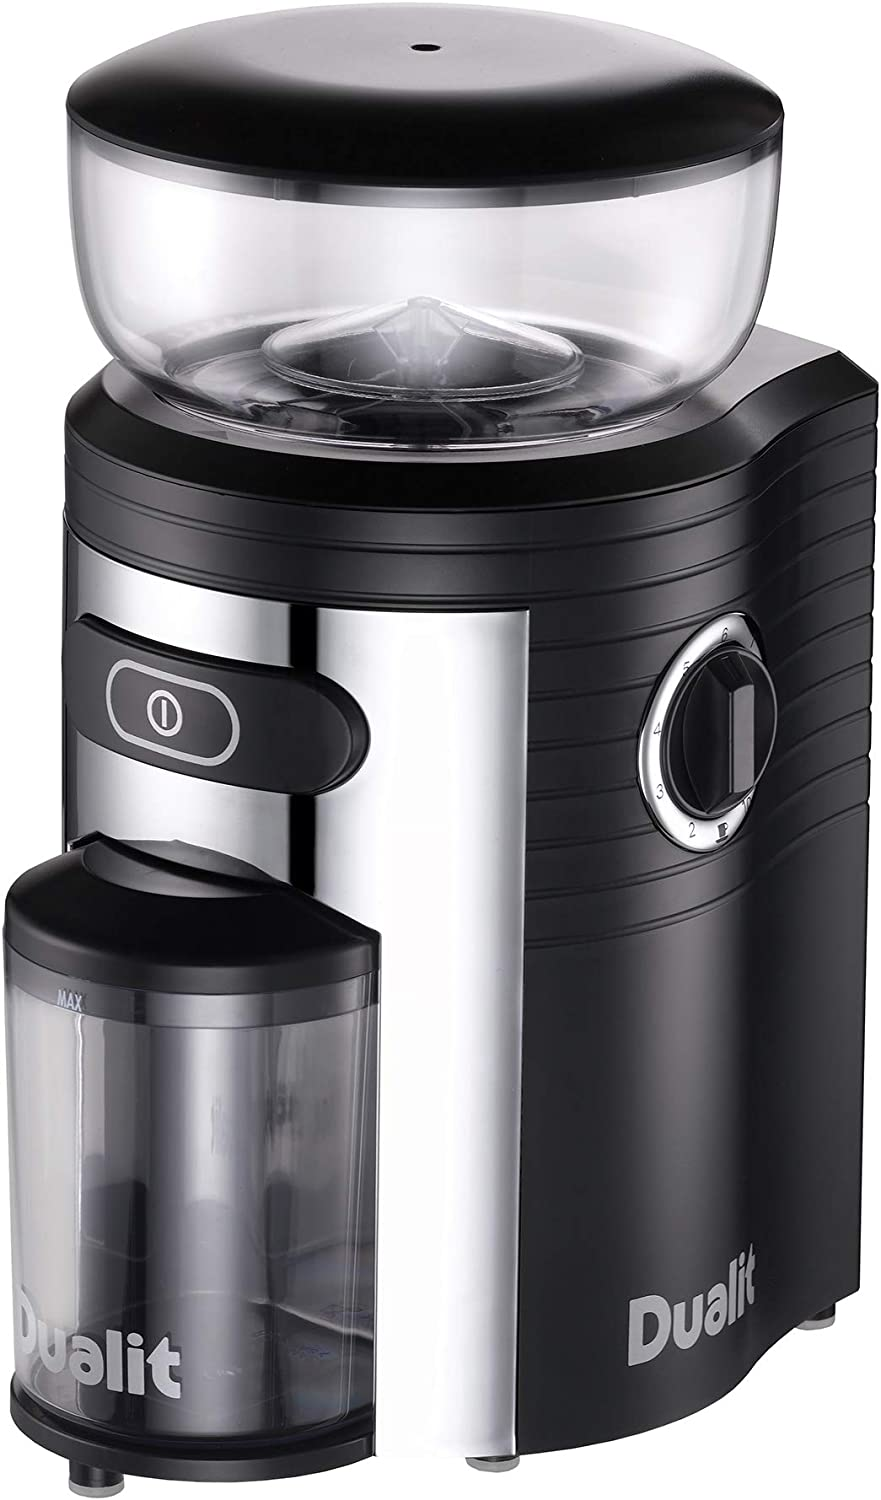 Dualit Burr Coffee Grinder | Chrome | Electric Coffee Grinder | Portion Control | Multiple Grind Settings | Conical Burr Grinder | 220g Capacity | 75015